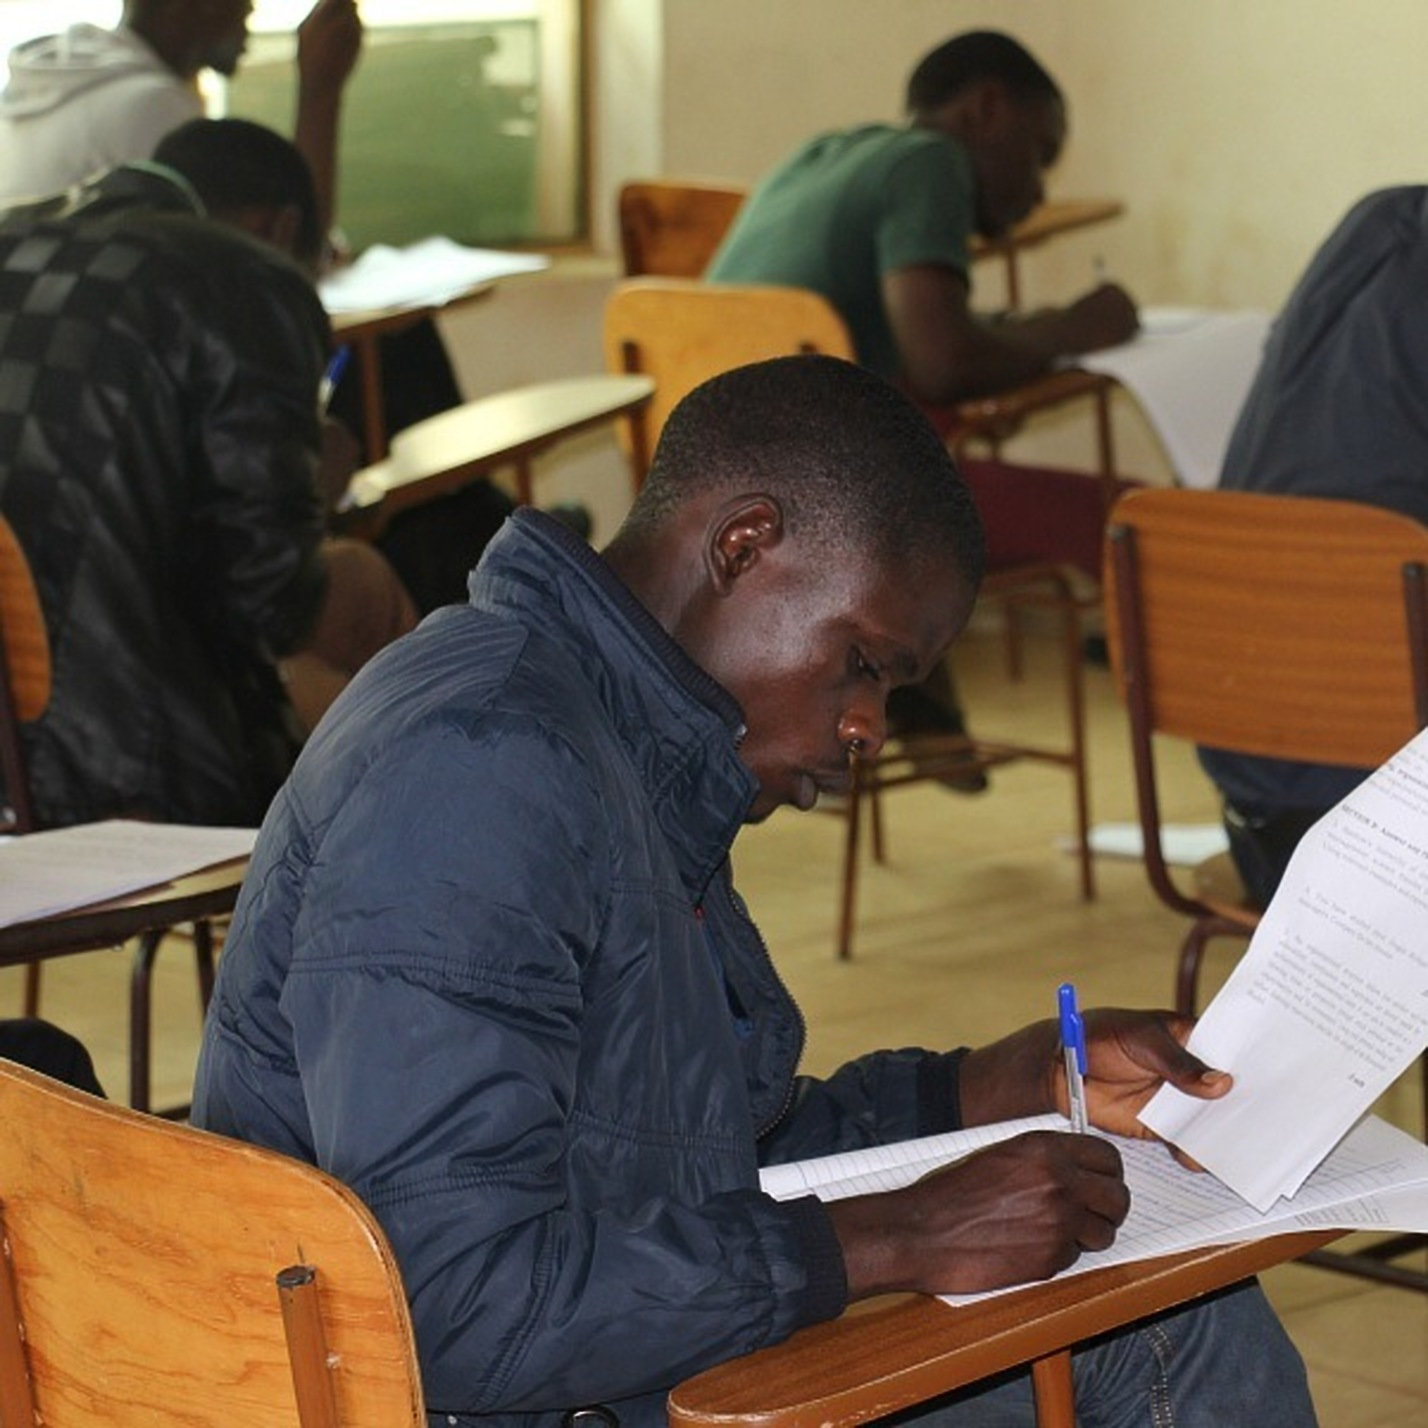 Uganda Business and Technical Examinations Board (UBTEB) has set tough measures to curb malpractices ahead of exams in May/June, 2019. (PHOTO/File)